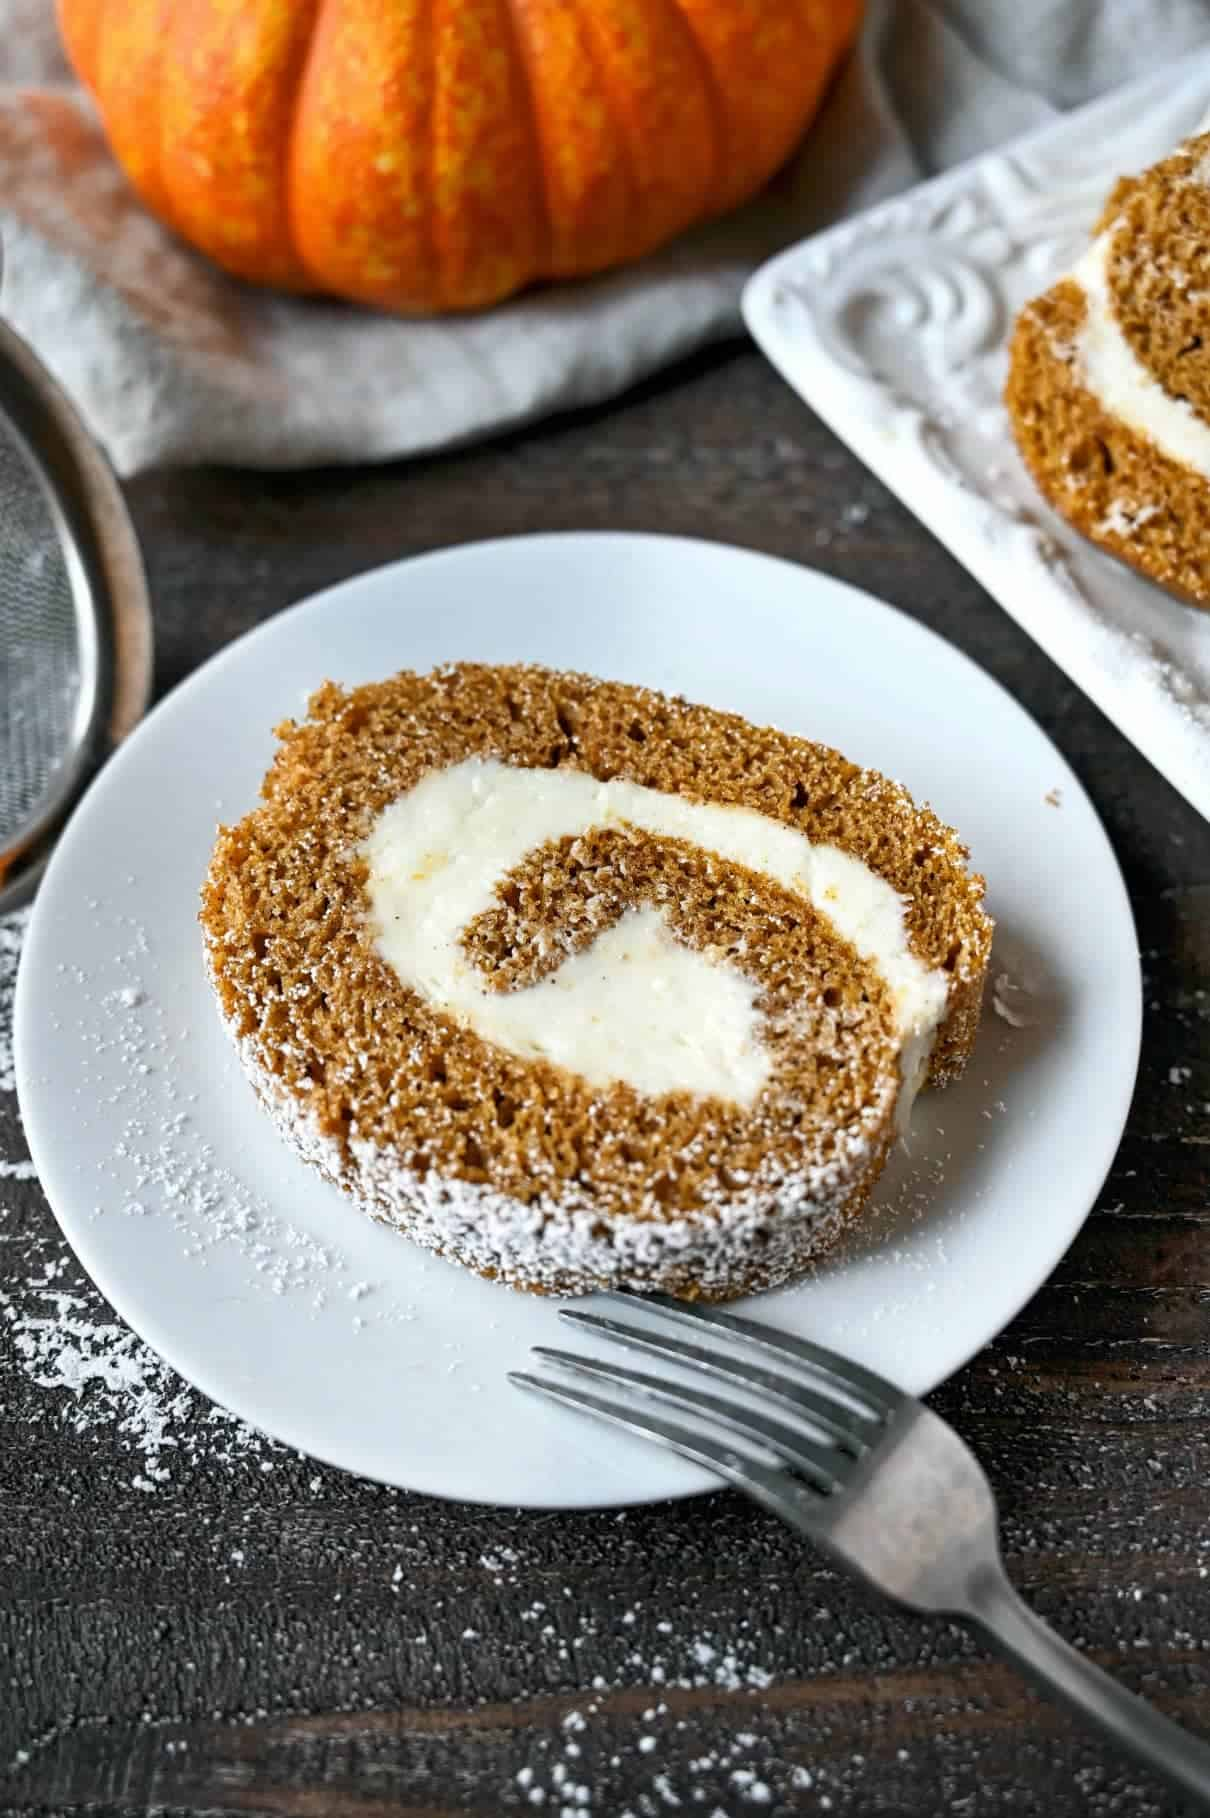 Pumpkin roll cake slice on a small white plate with a fork.